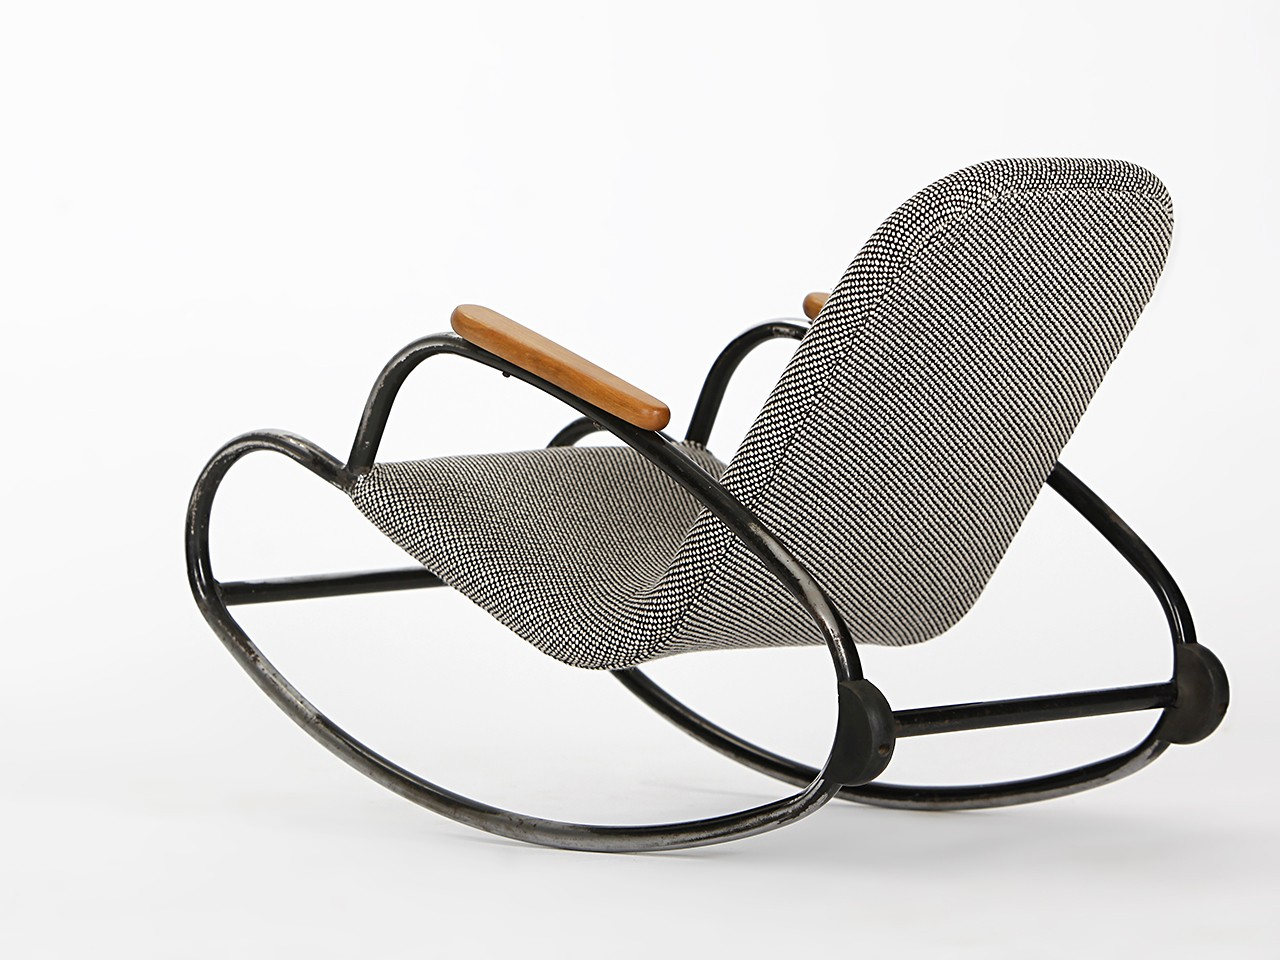 ... re-upholstered childrens rocking chair - 1960s - Design Market